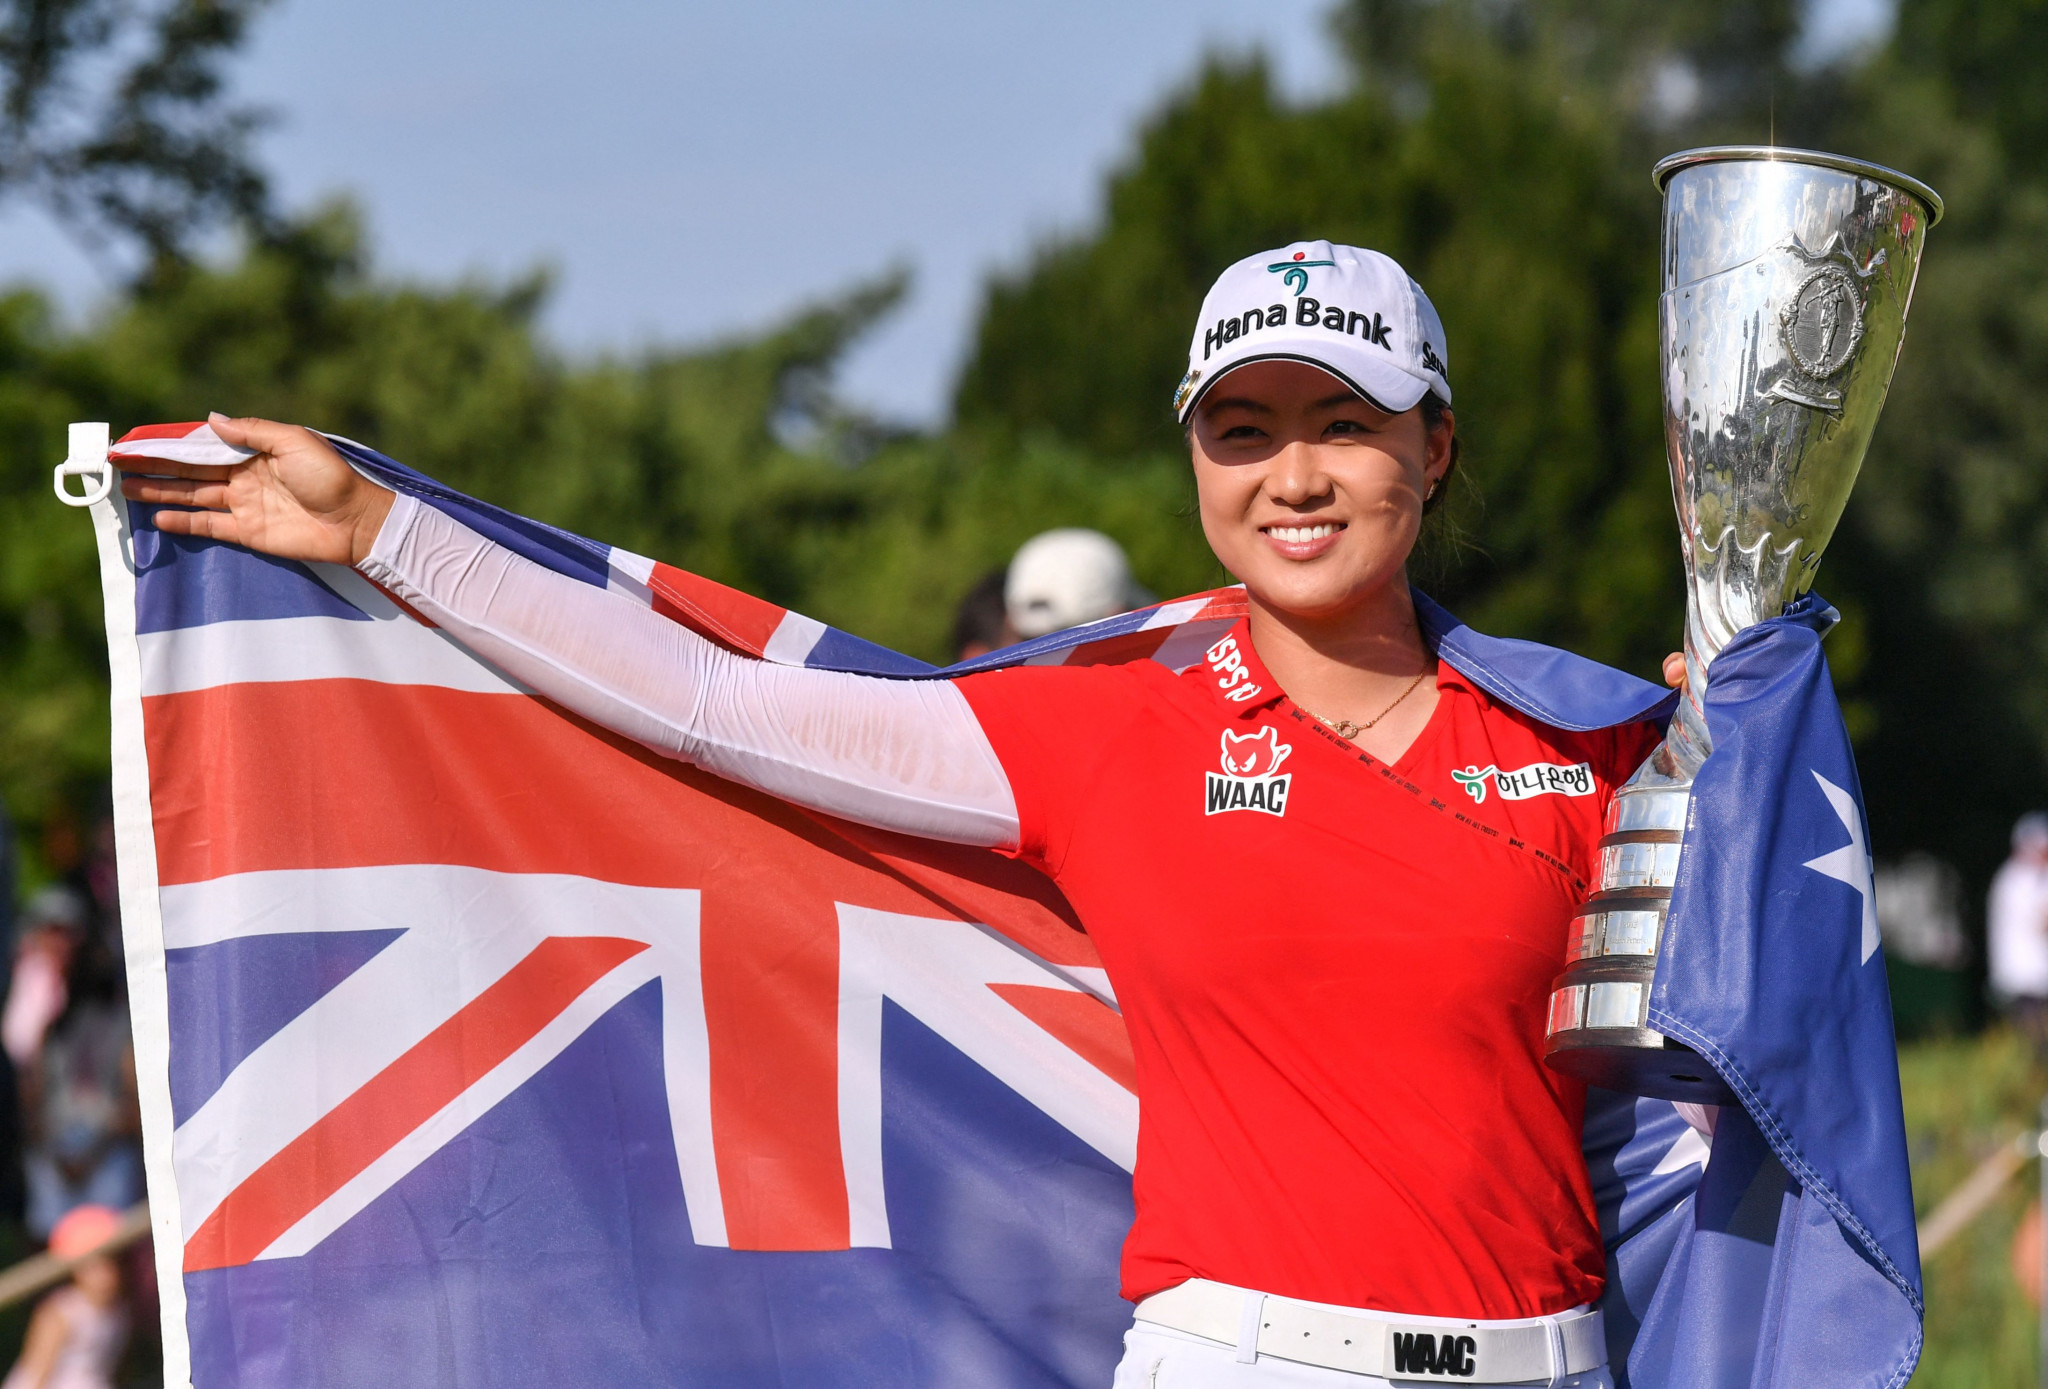 Australia's Lee comes from seven shots back to win first major at Evian Championship